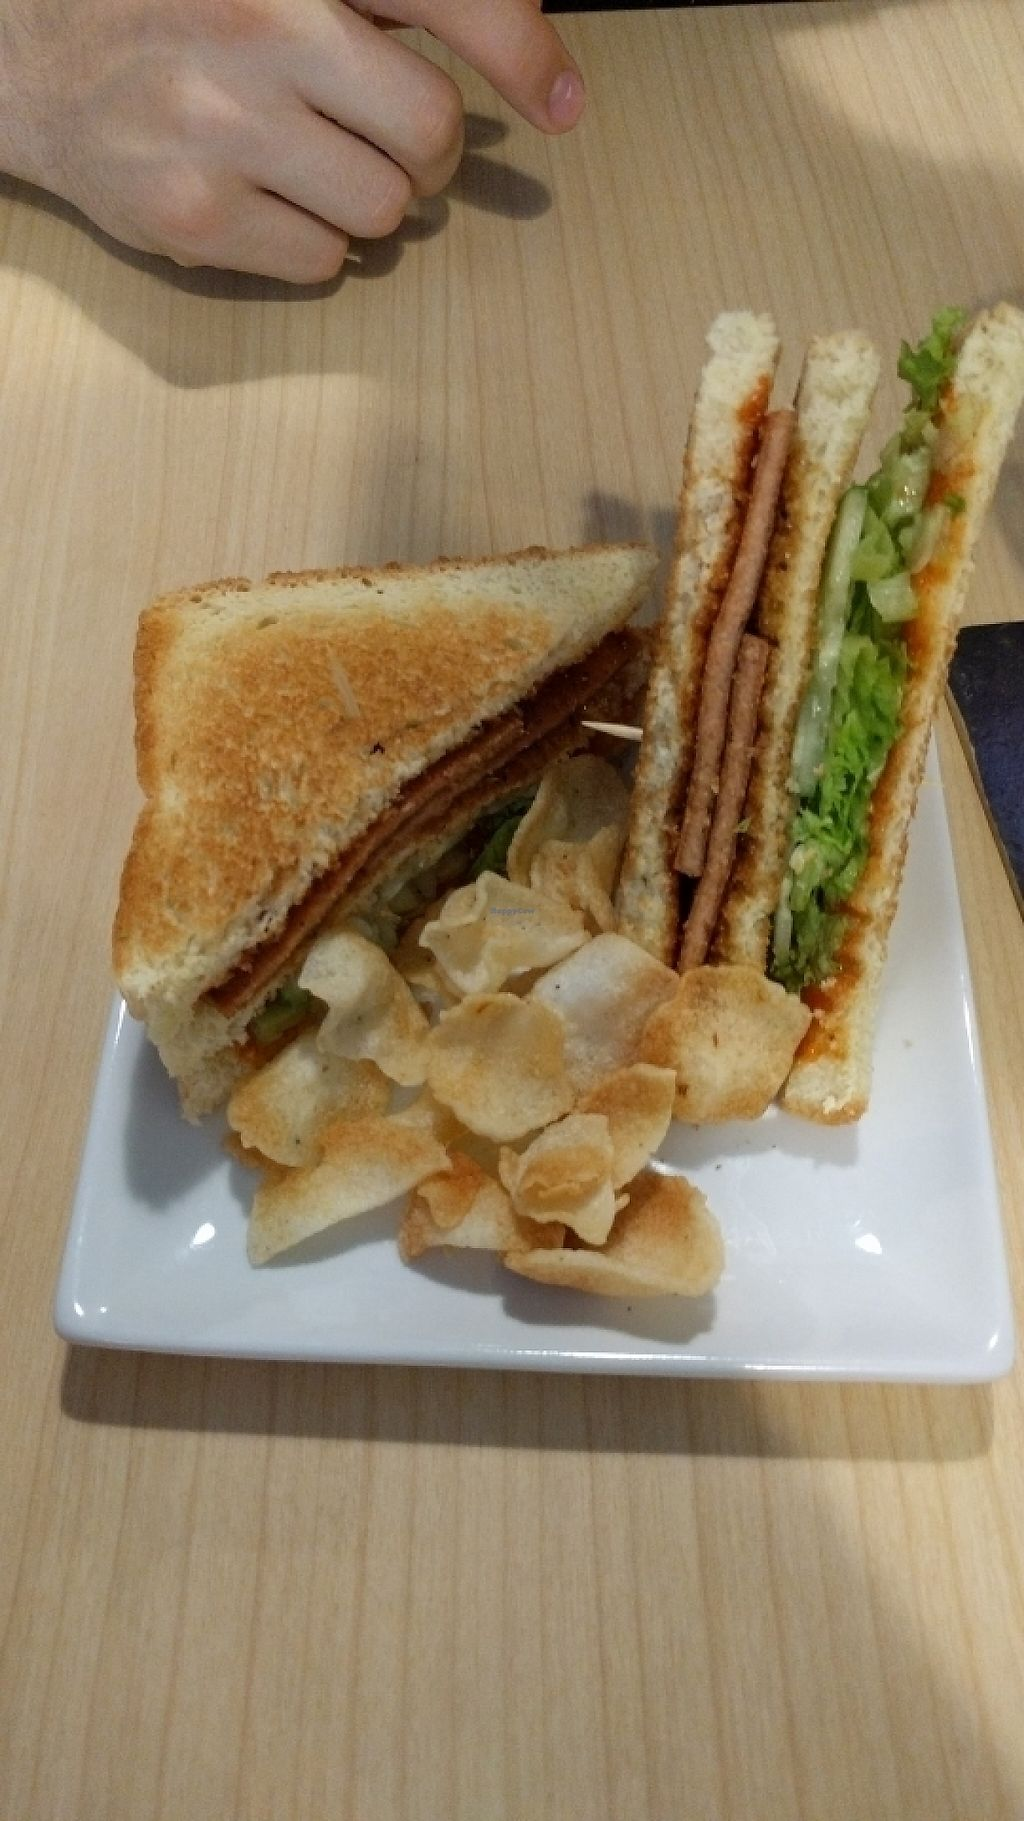 "Photo of Veggielicious Cafe  by <a href=""/members/profile/HannahGilbert"">HannahGilbert</a> <br/>ham sandwich and chips  <br/> May 31, 2017  - <a href='/contact/abuse/image/80636/264432'>Report</a>"